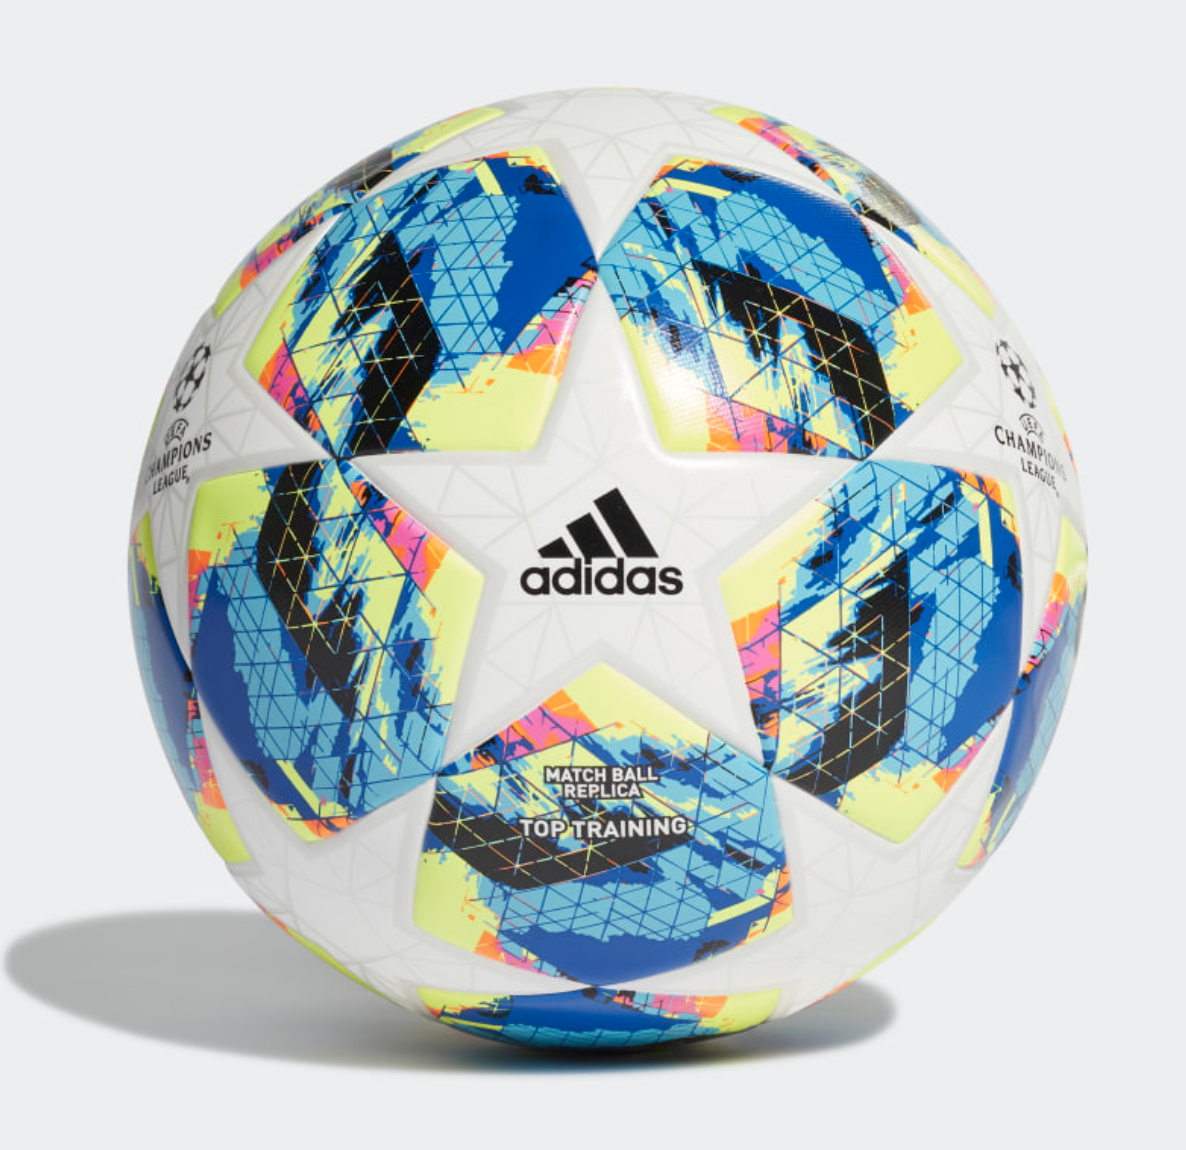 Adidas' Finale Top Training Ball covered in white stars, a colorful print, and an Adidas black logo